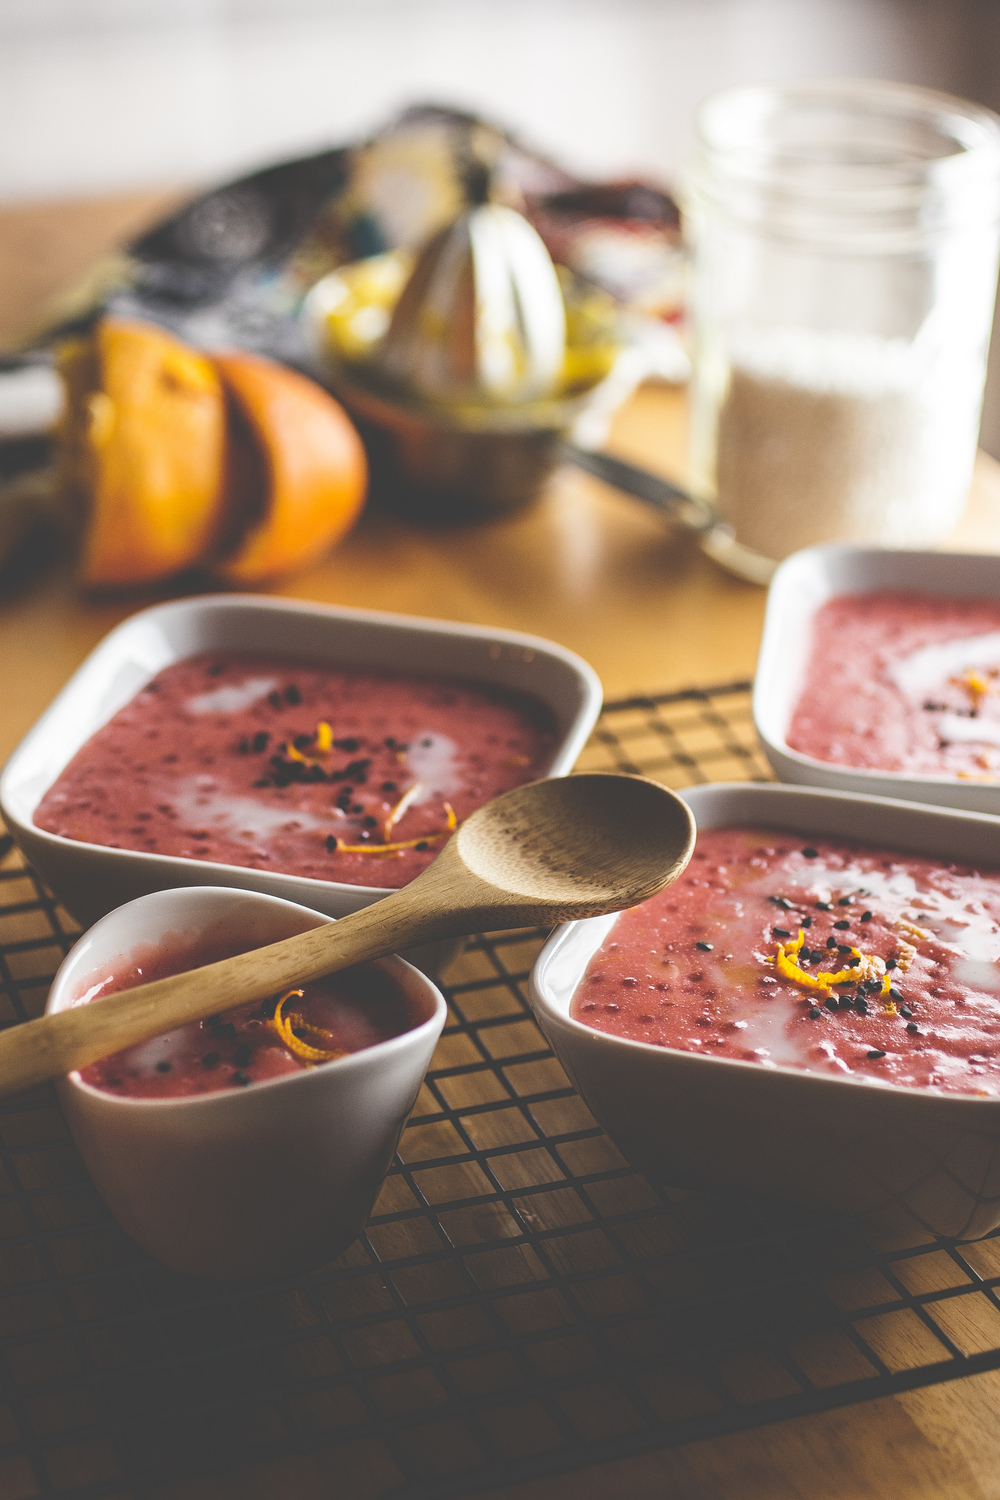 Produce On Parade - Cinnamon Blood Orange Tapioca Pudding - This is a uniquely pink Valentine's Day dessert. A nod to retro desserts.  A delicious orange tapioca pudding. Call this whatever you want, but it's an unexpected twist on a usually modest dessert that's sure to be a hit.